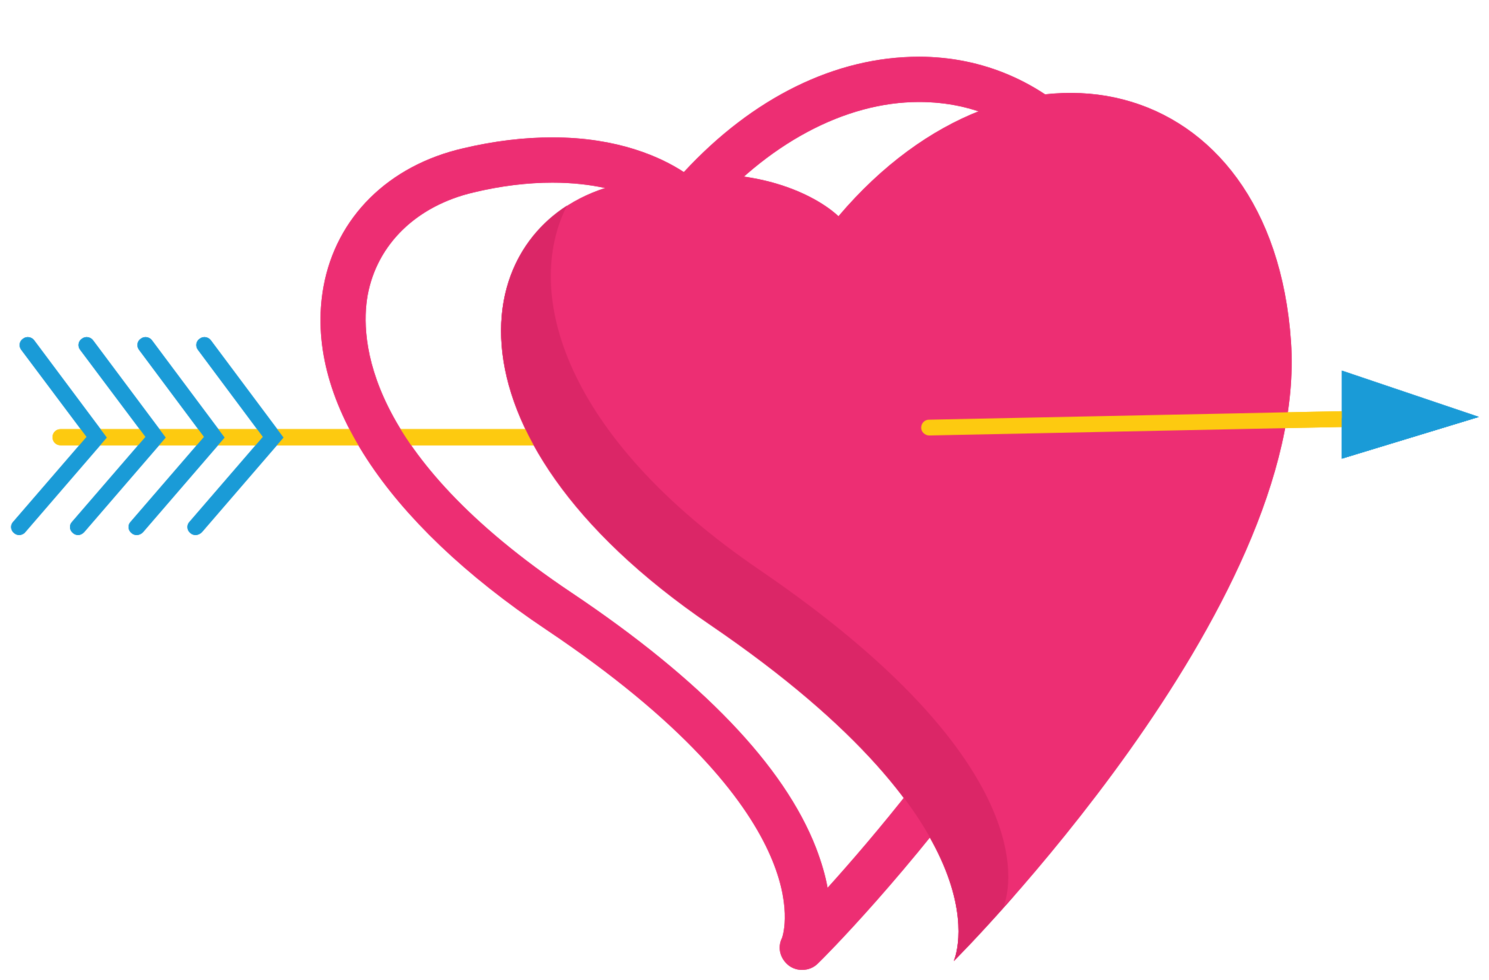 Cute heart with arrow png